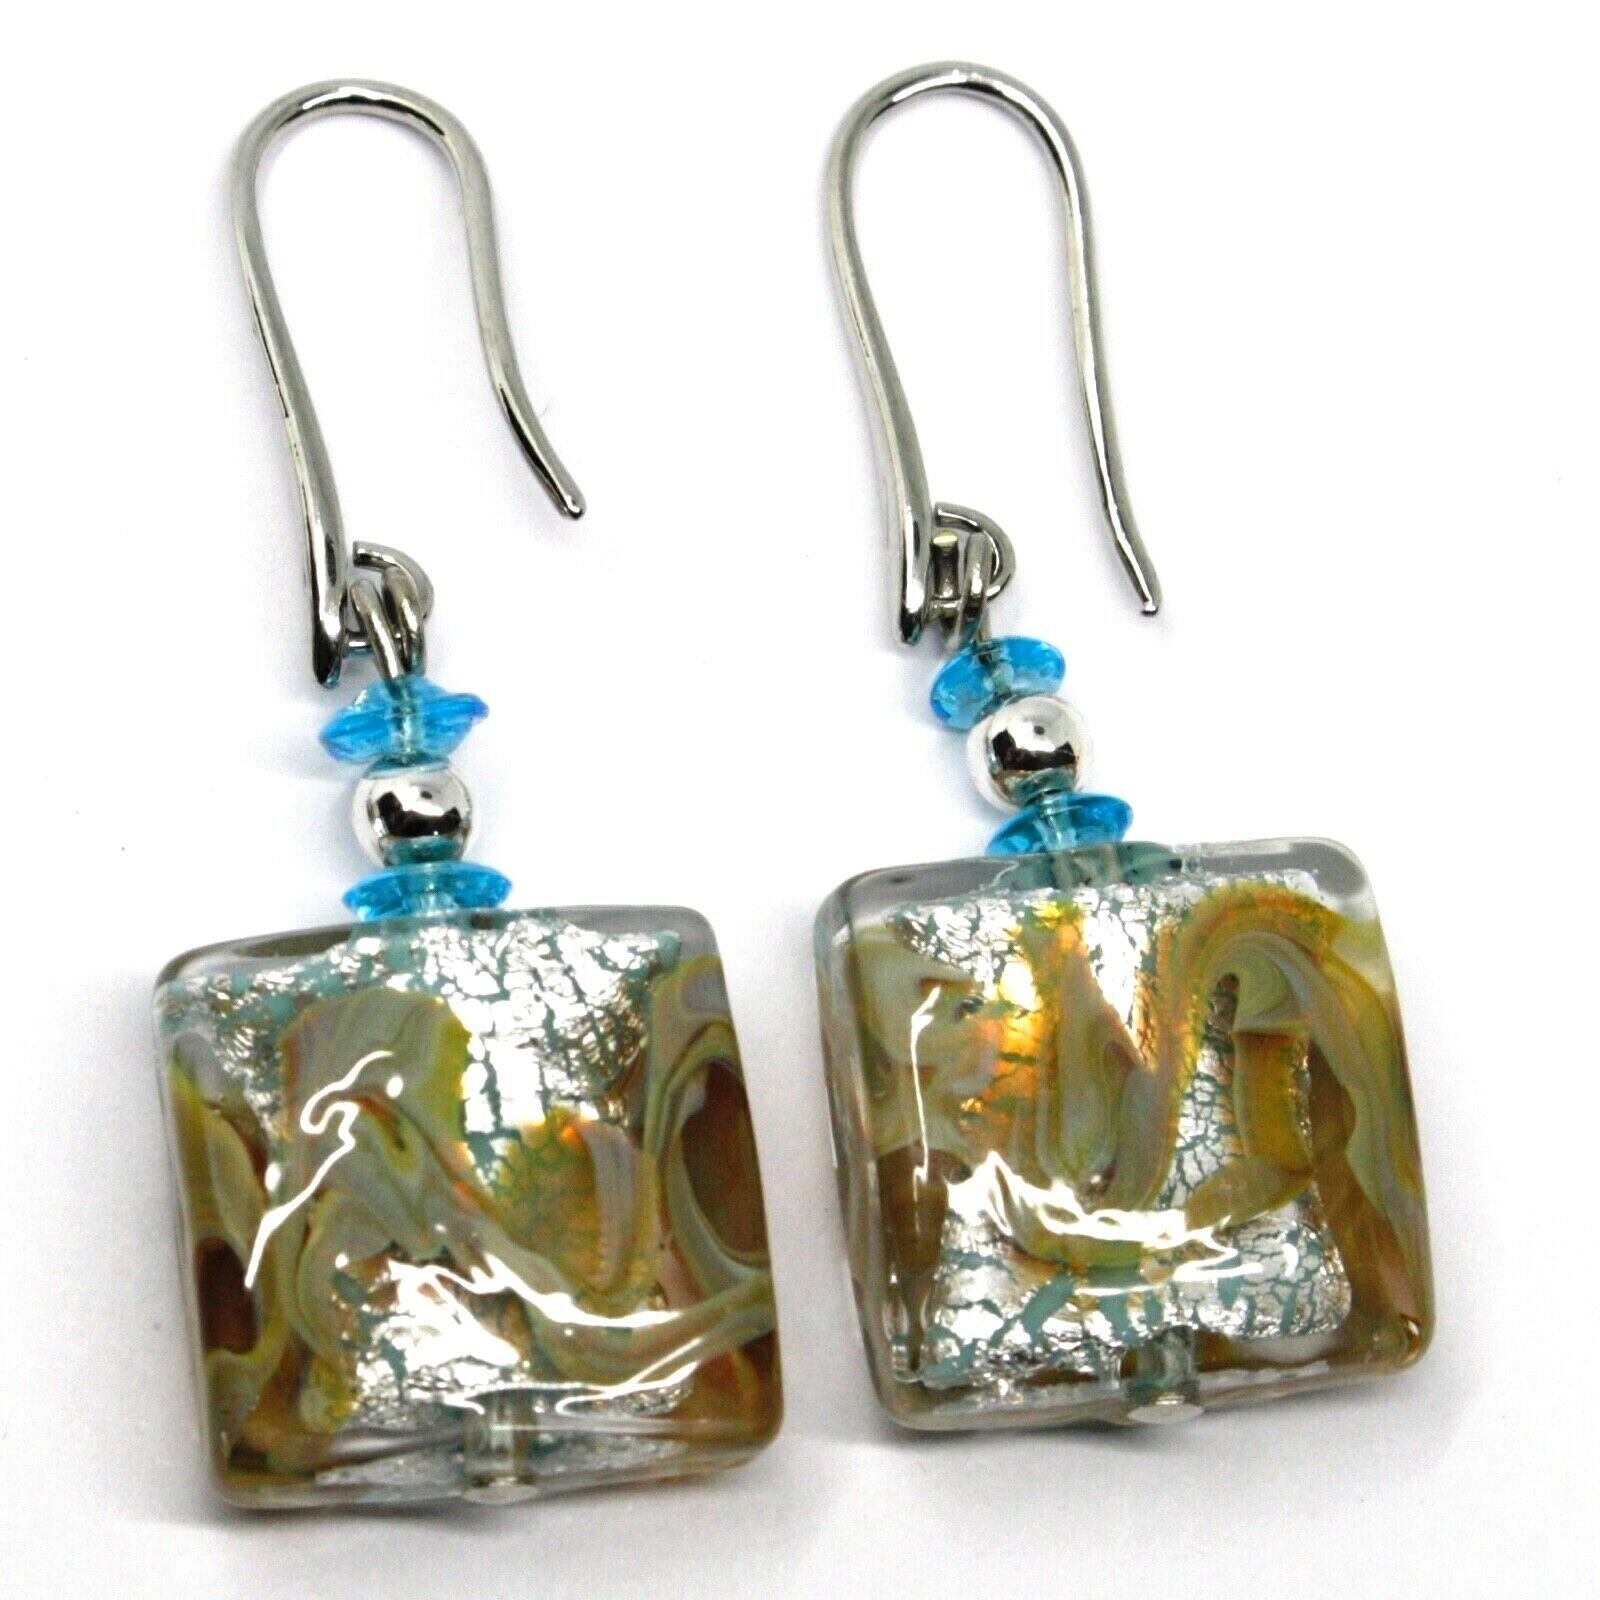 PENDANT EARRINGS WITH AZURE MURANO SQUARE GLASS & SILVER LEAF, MADE IN ITALY